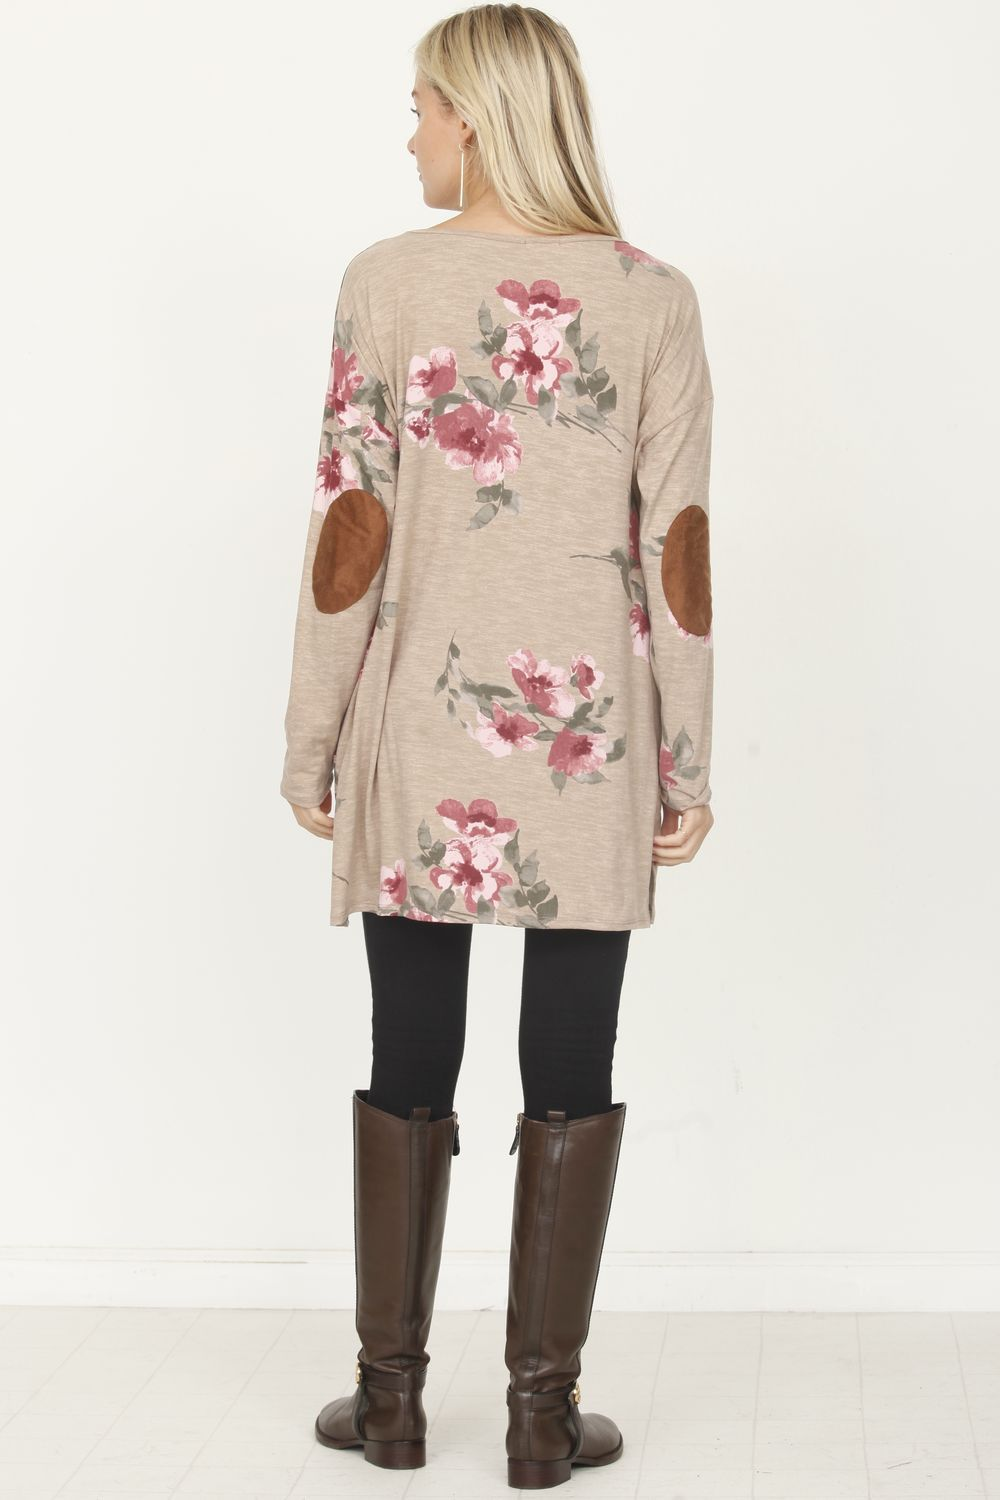 Floral Elbow Patch Tunic